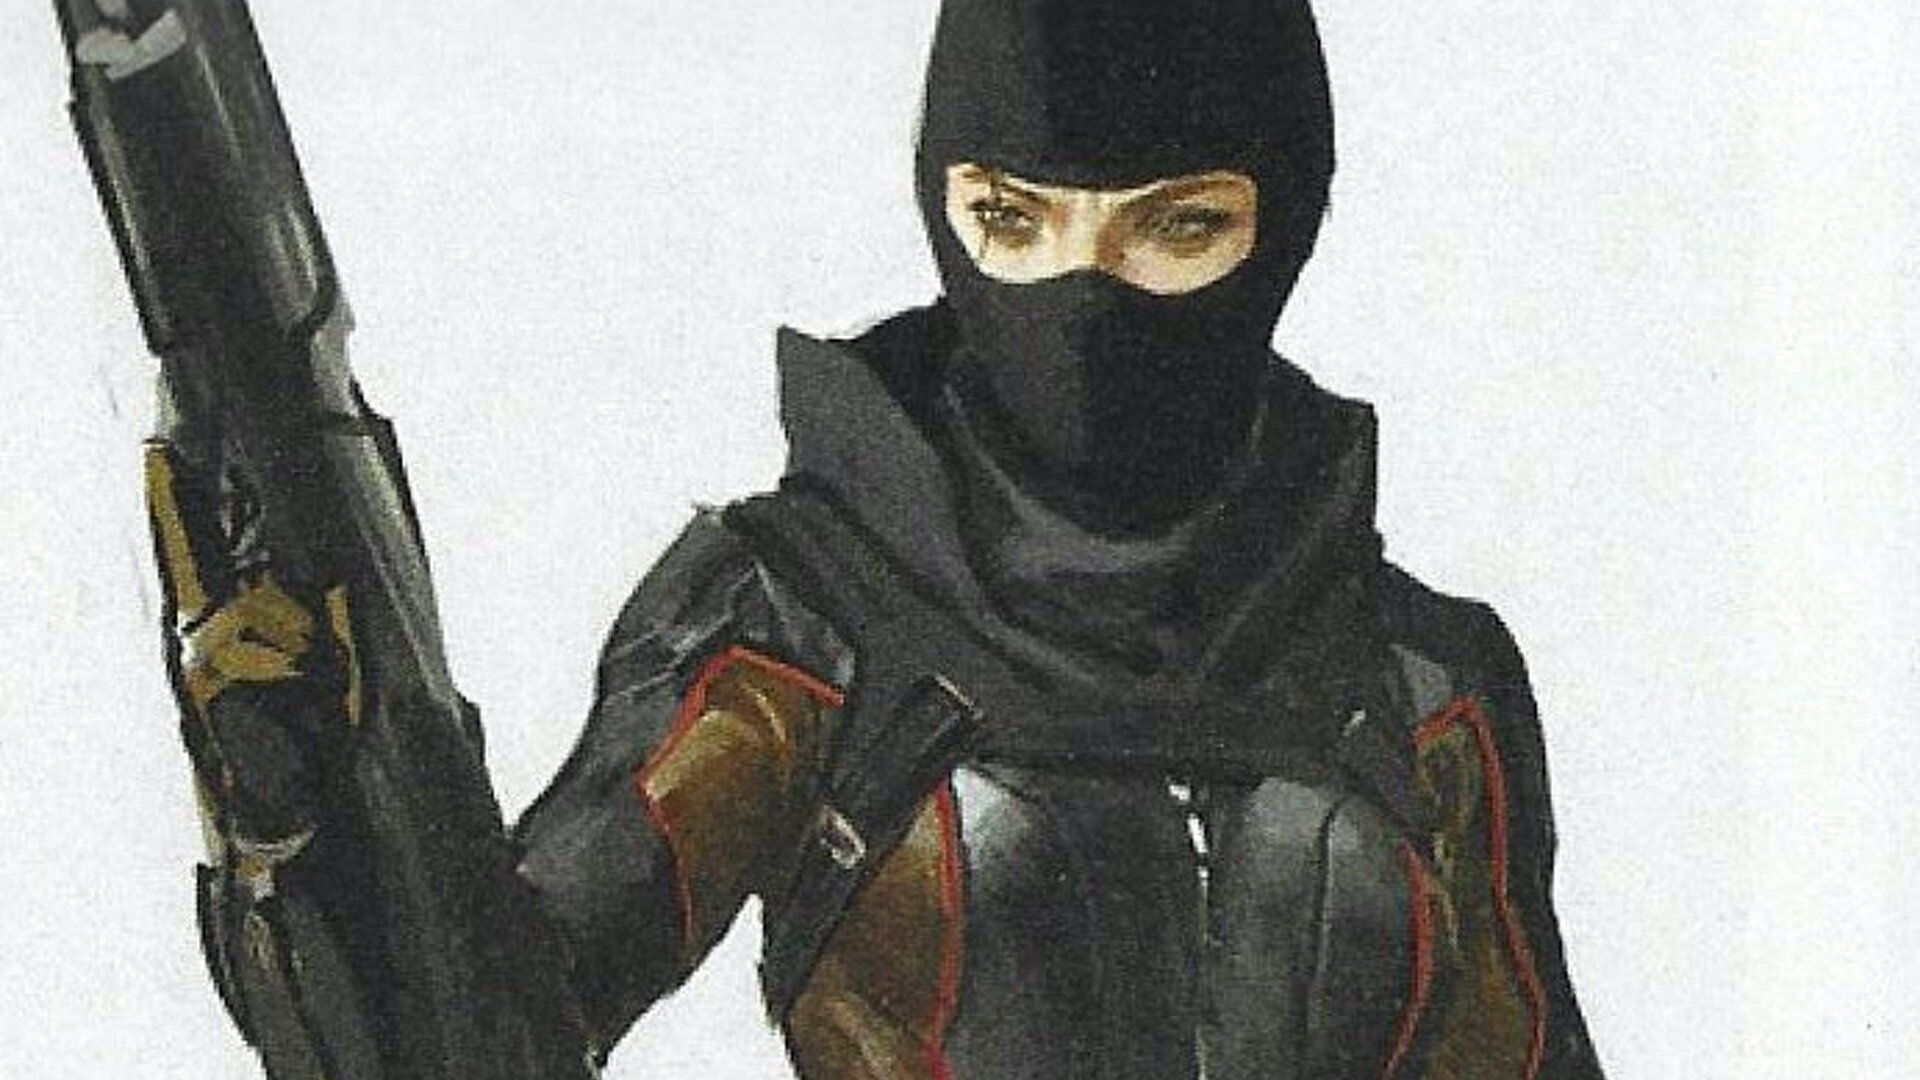 Alternate Costume Designs For Black Widow And Hawkeye In